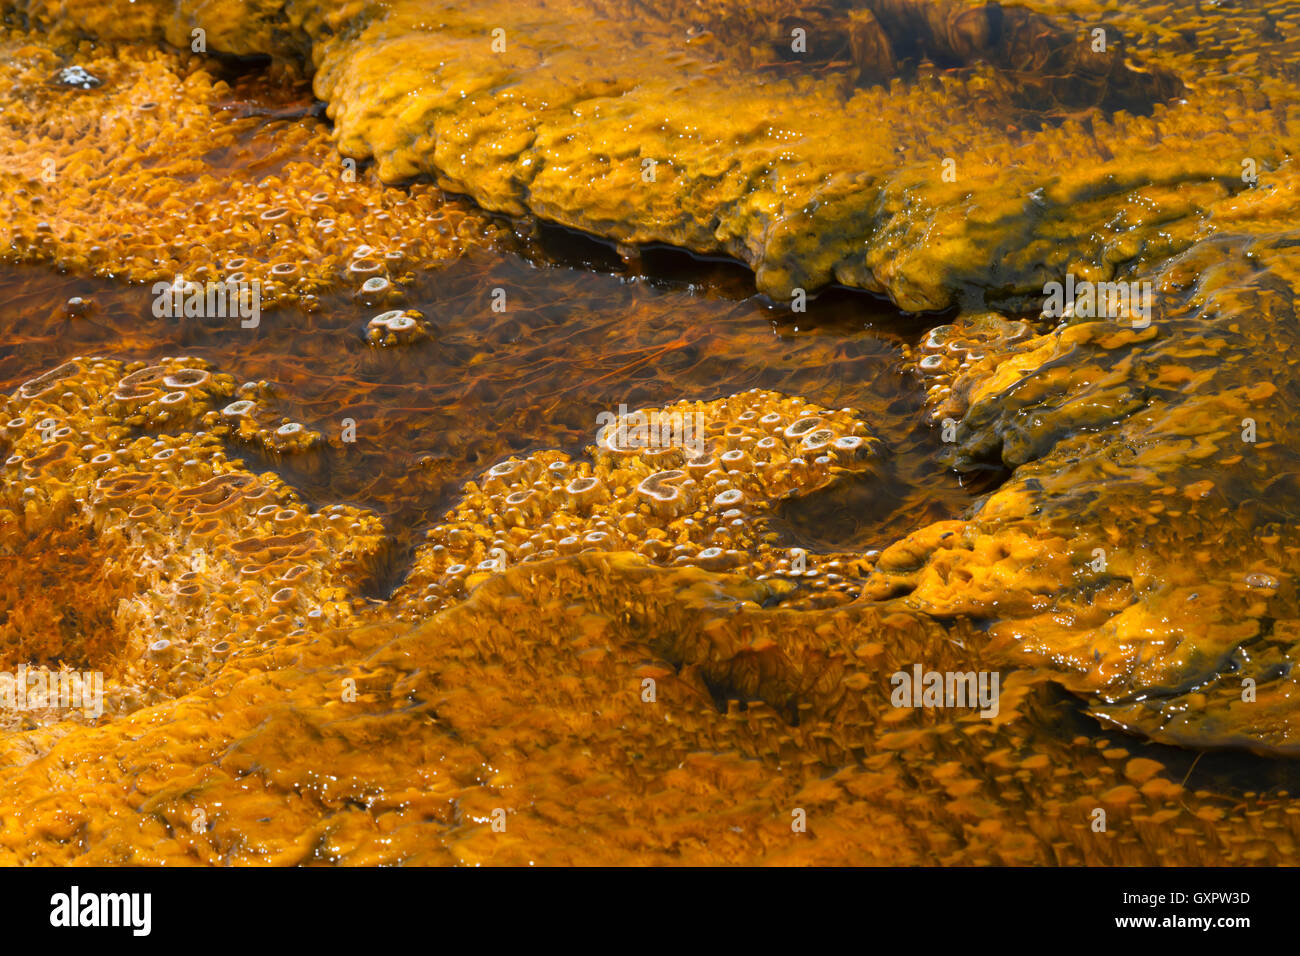 Bacterial growth in the warm stream of a thermal spring, West Thumb Geyser Basin, Yellowstone National Park, Wyoming, - Stock Image